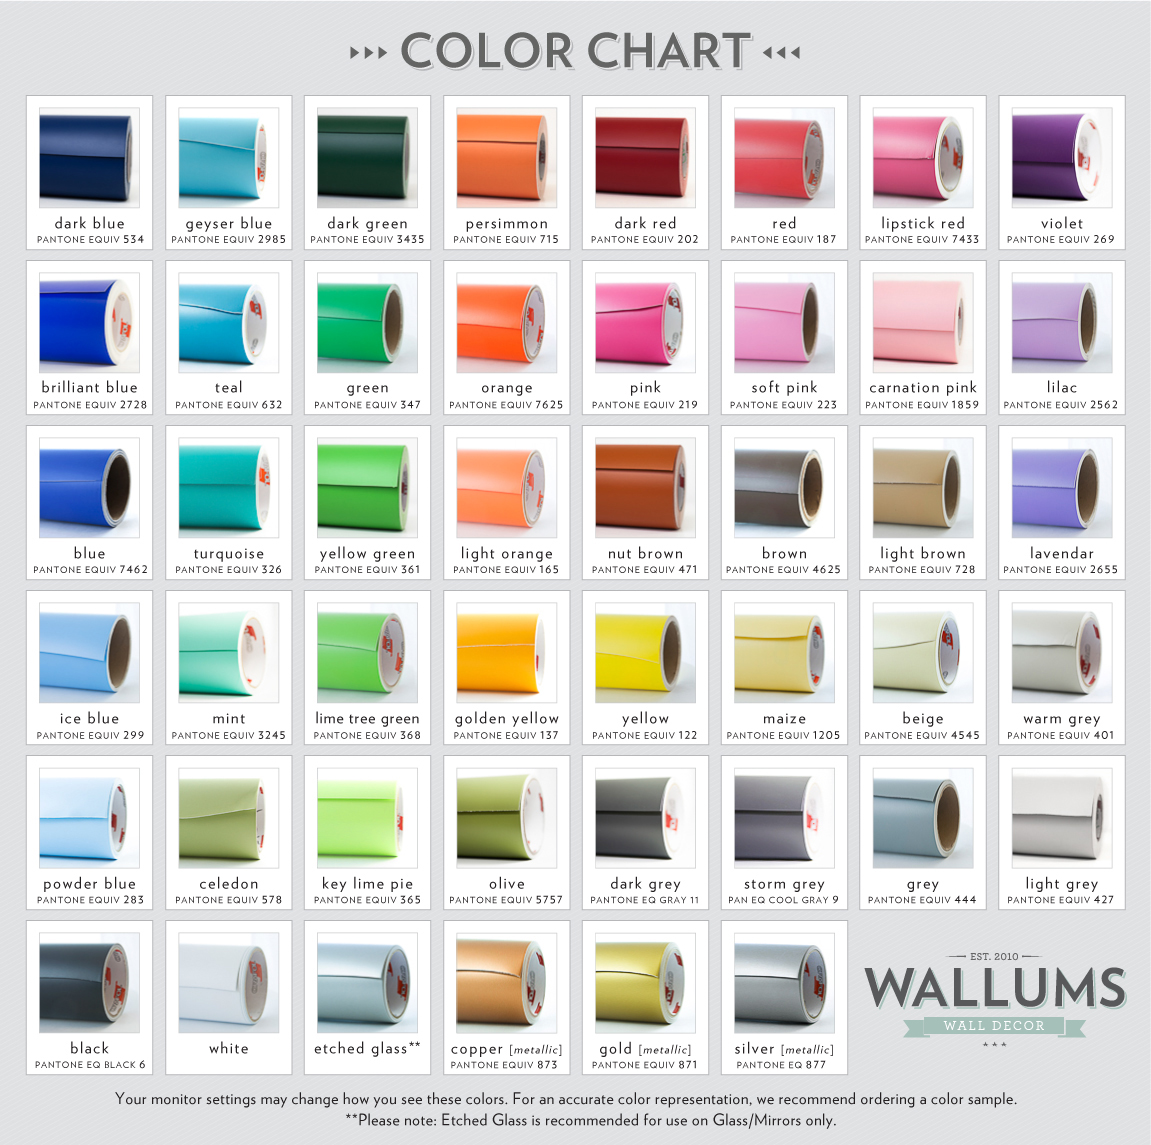 Wallums Wall Decal Color Options